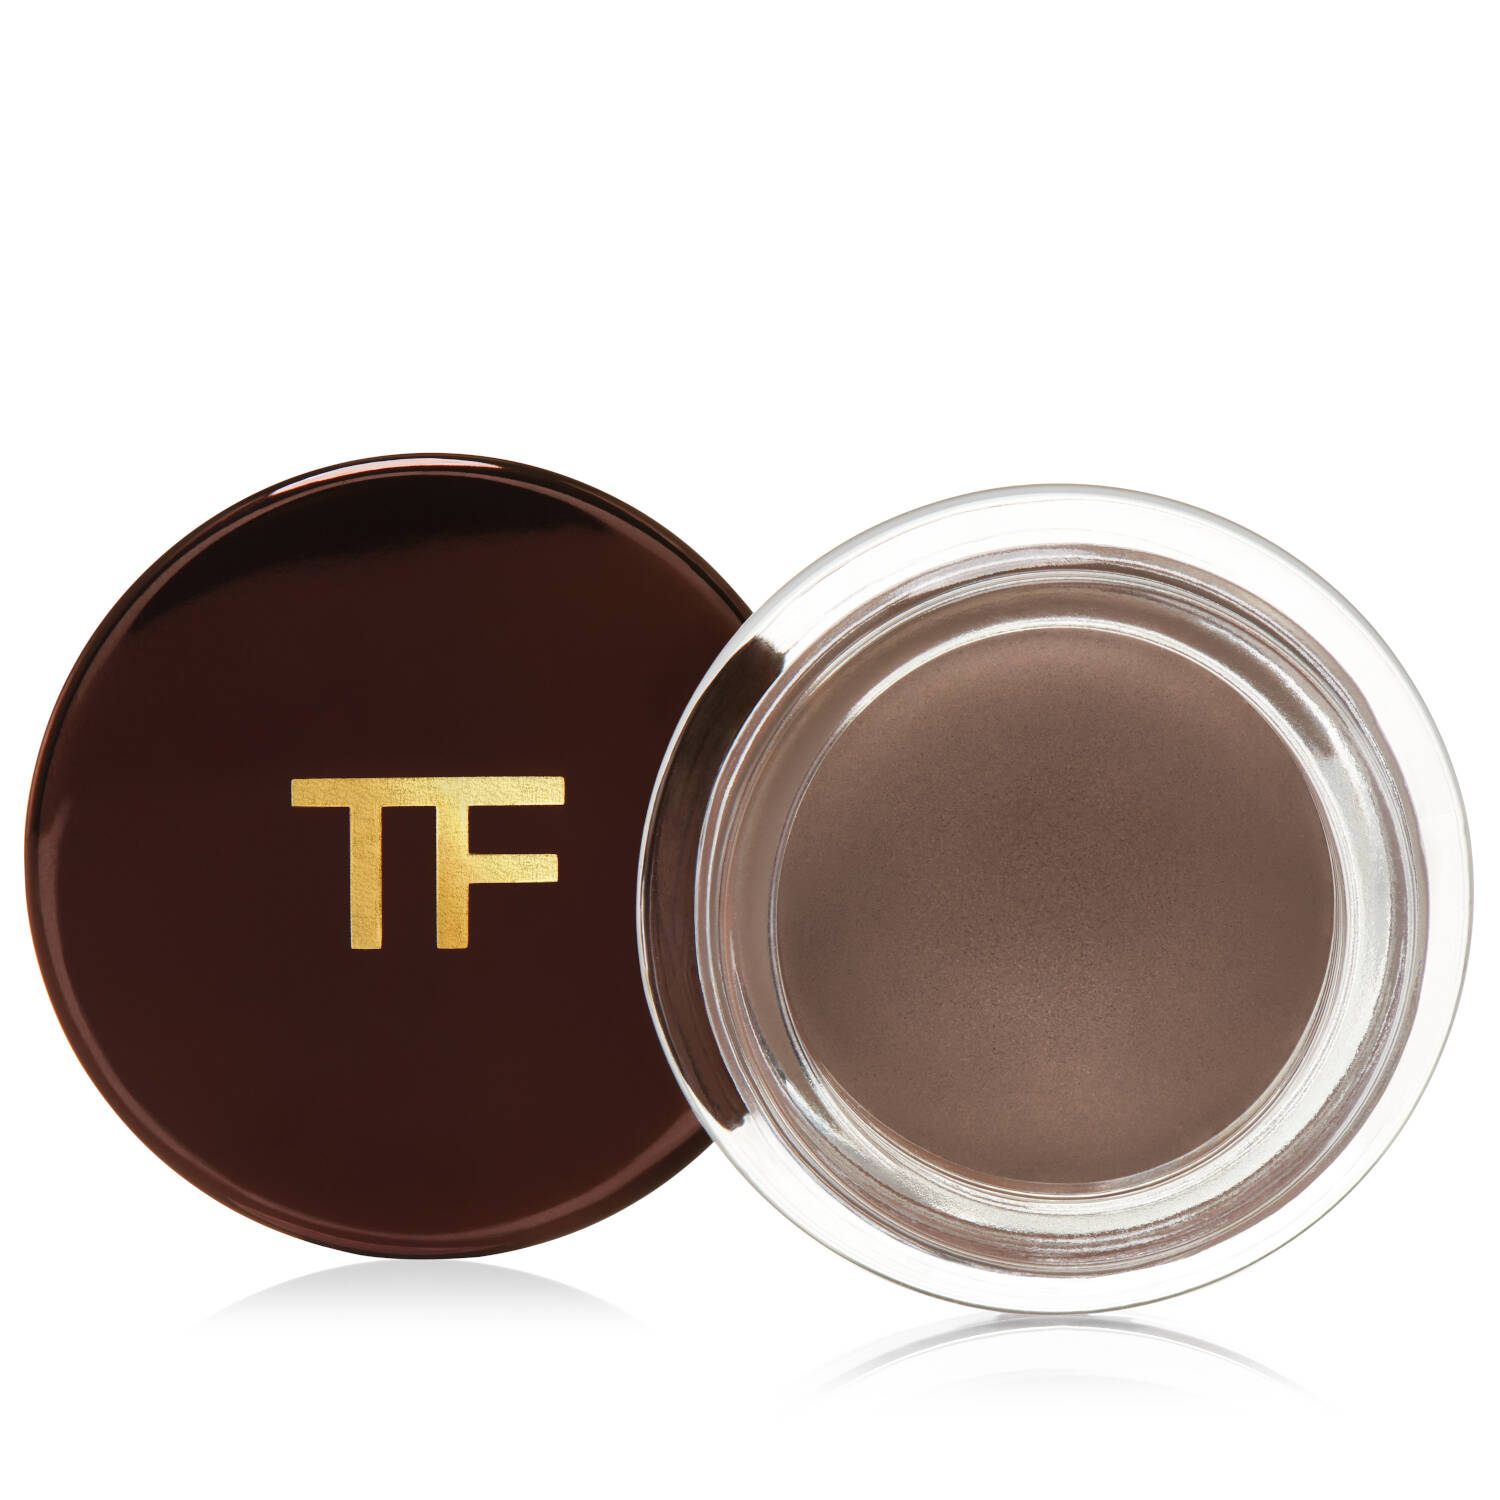 TOM FORD Brow Pomade - 01 Blonde (01 | 5 g) Make Up, Augen, Augenbrauen, Eyes von TOM FORD